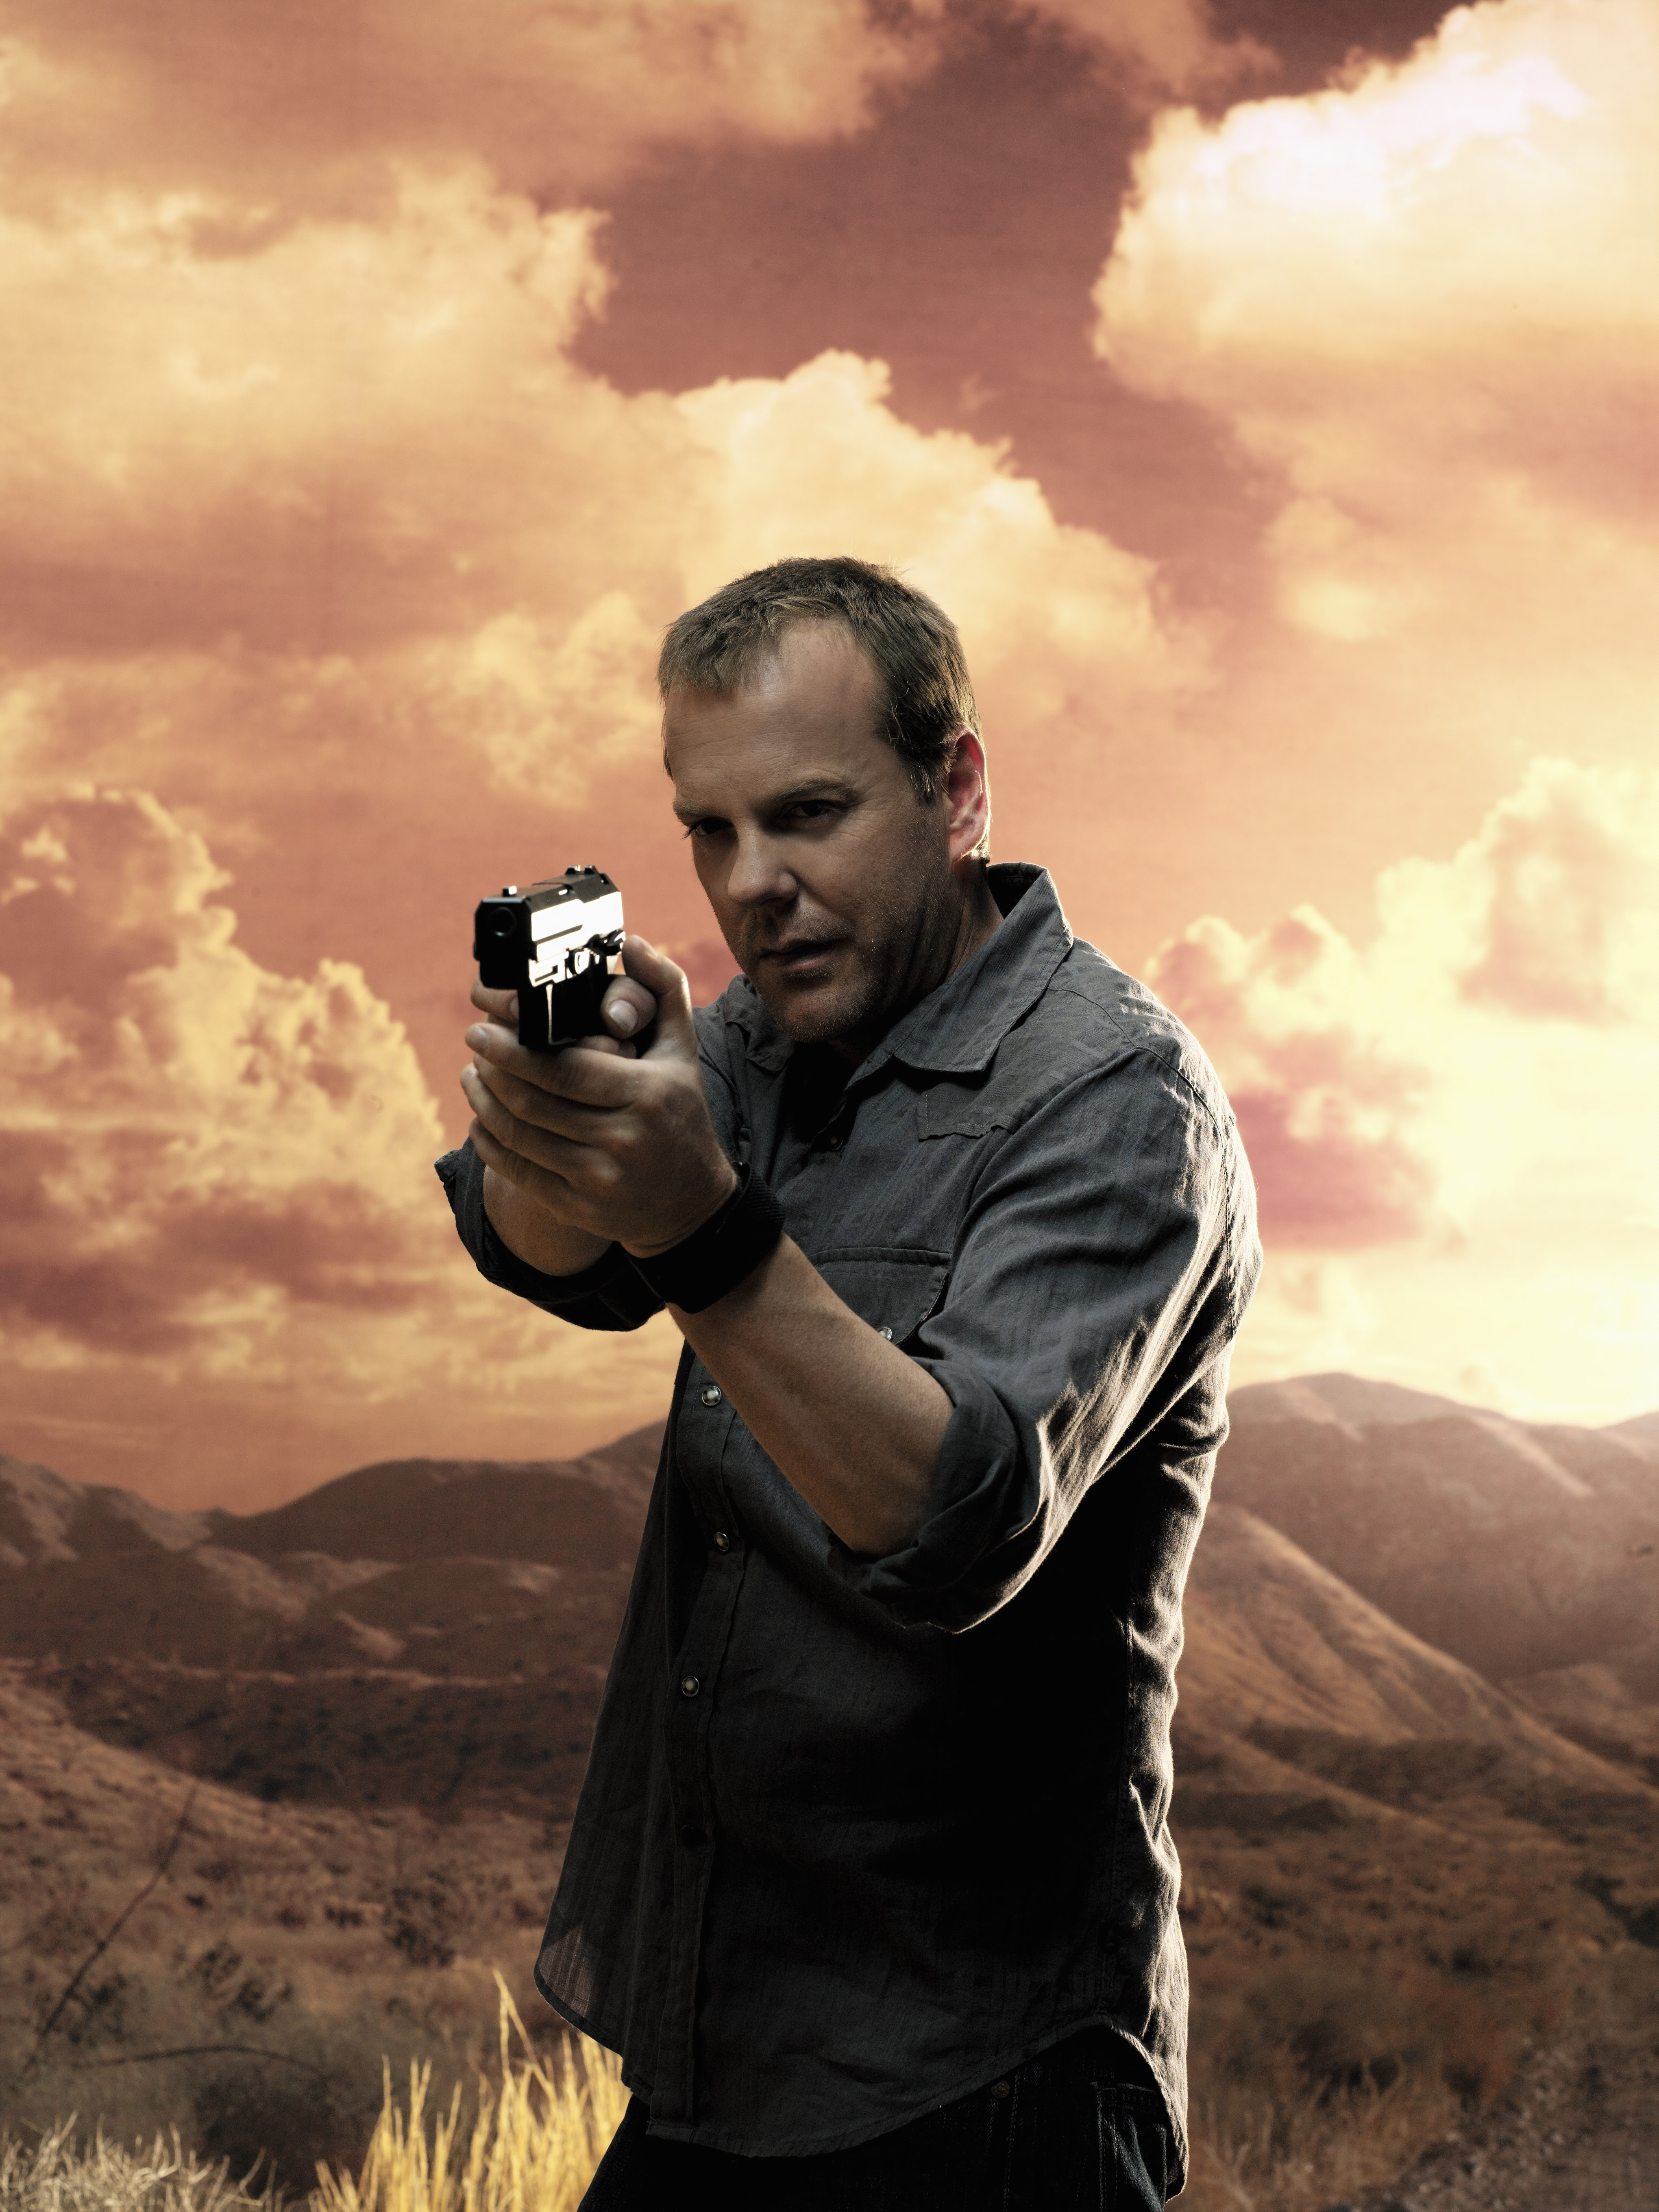 24 jack bauer kiefer sutherland 082 dvdbash dvdbash. Black Bedroom Furniture Sets. Home Design Ideas